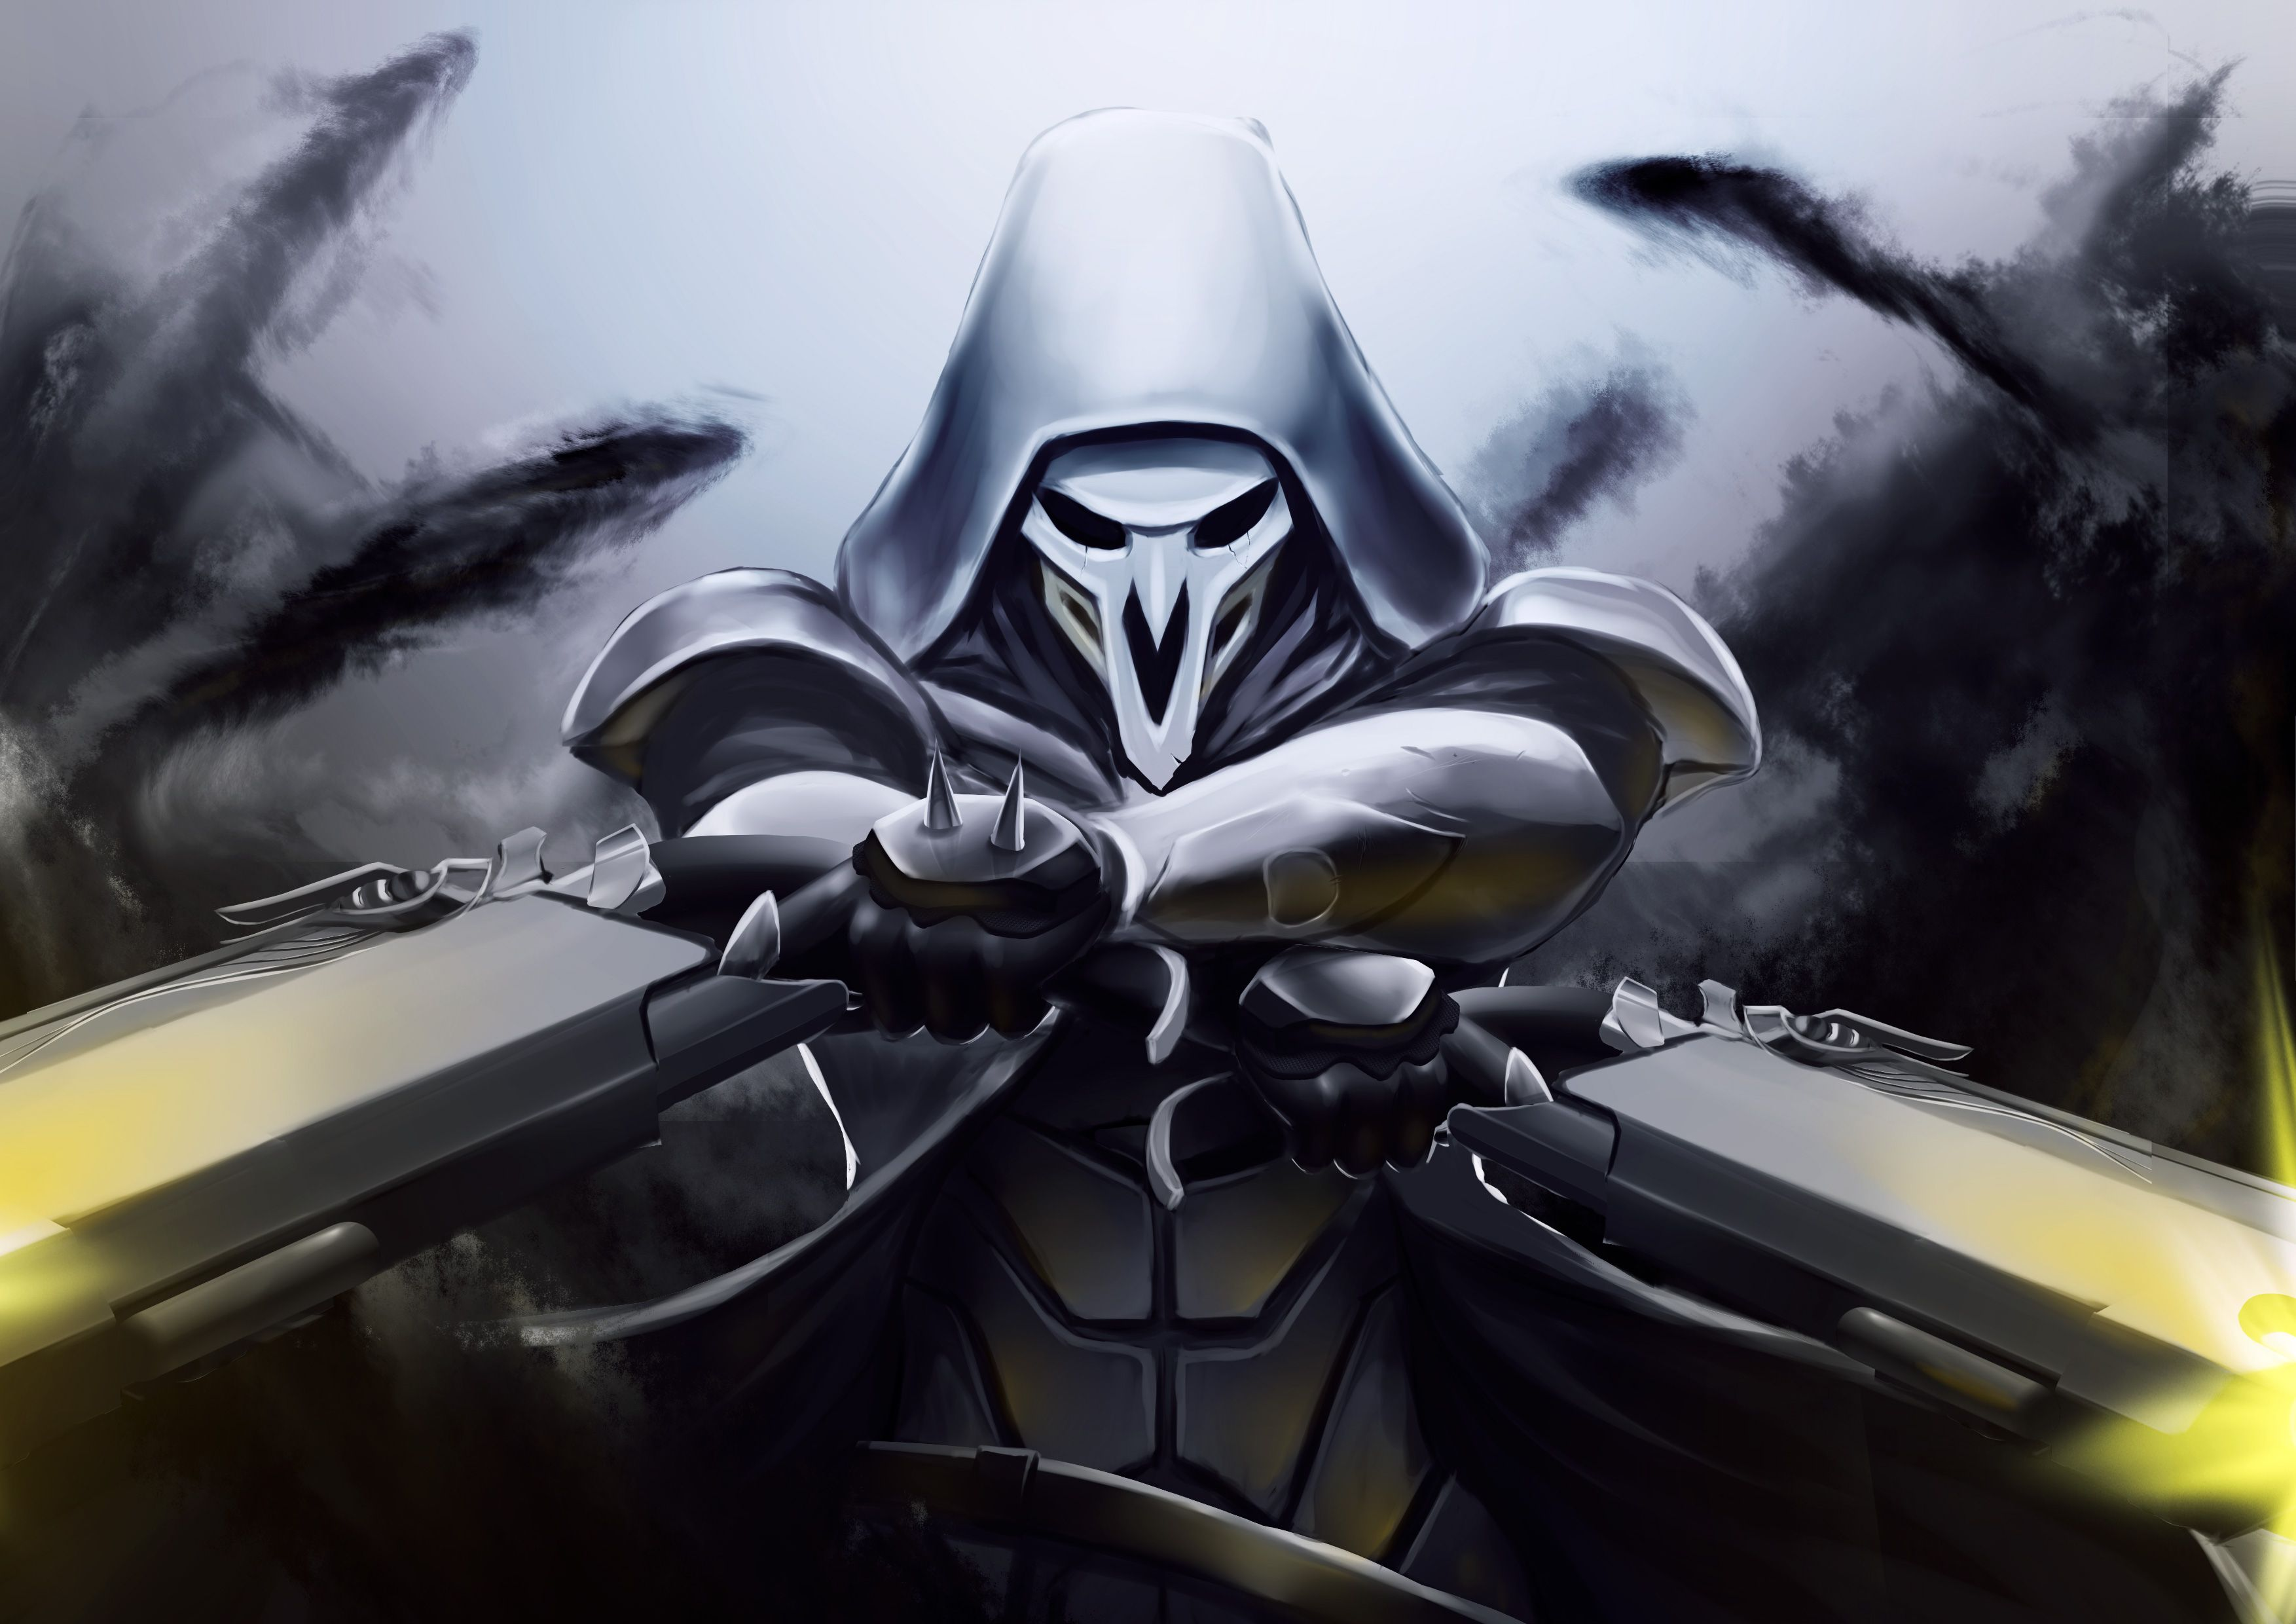 Wonderful Reaper Overwatch Wallpapers For Android Reaper